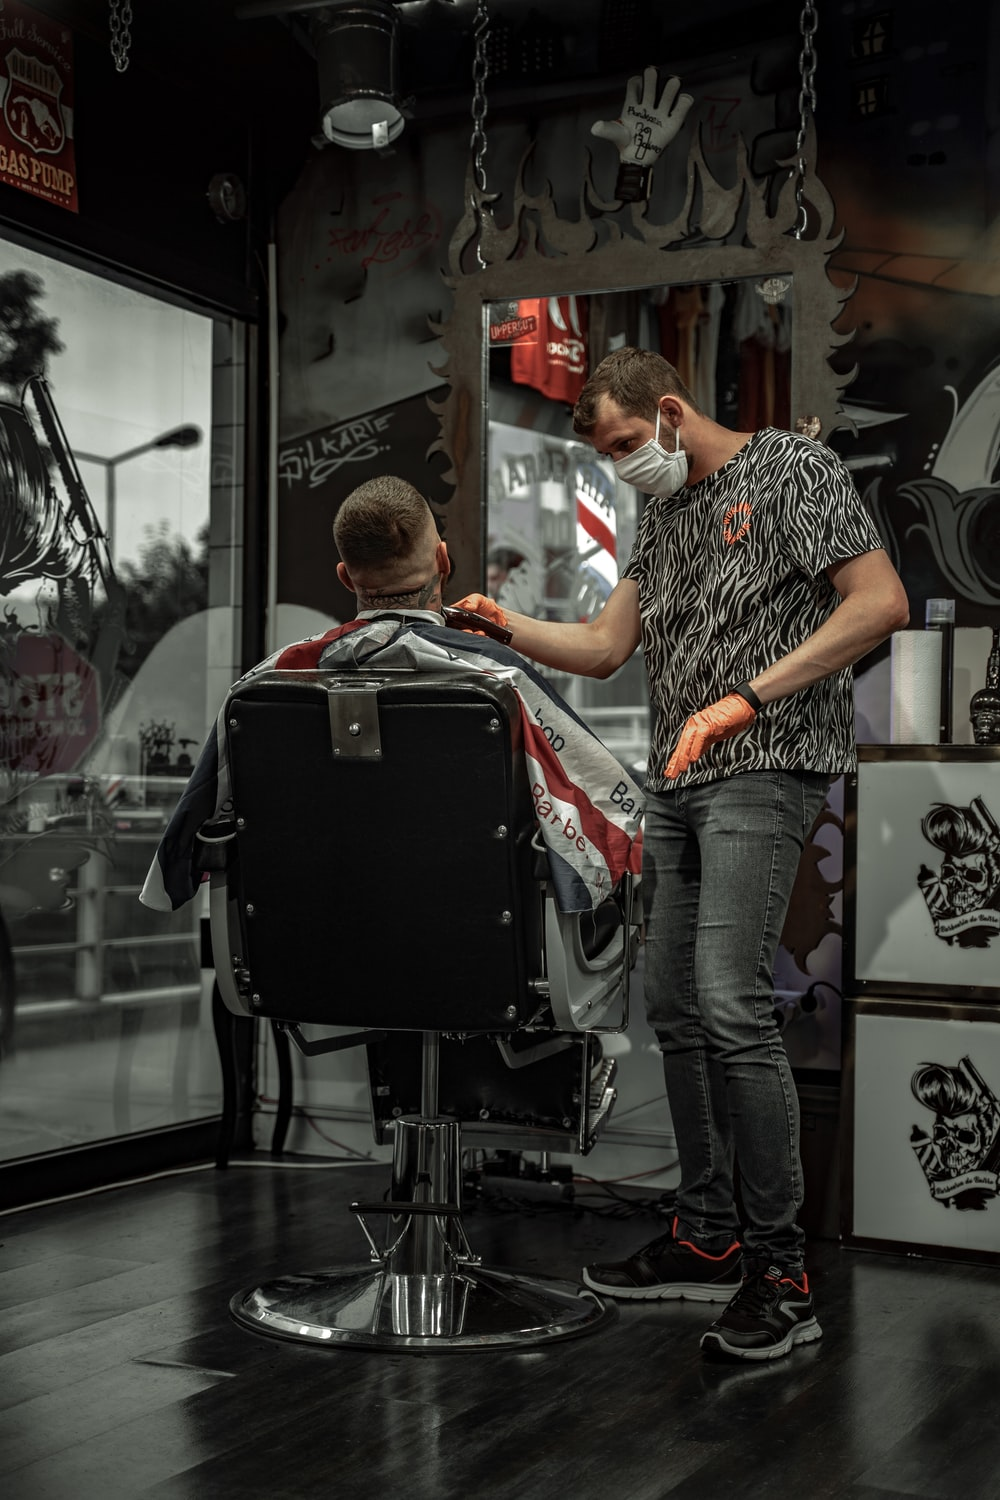 man in black and white shirt sitting on barber chair